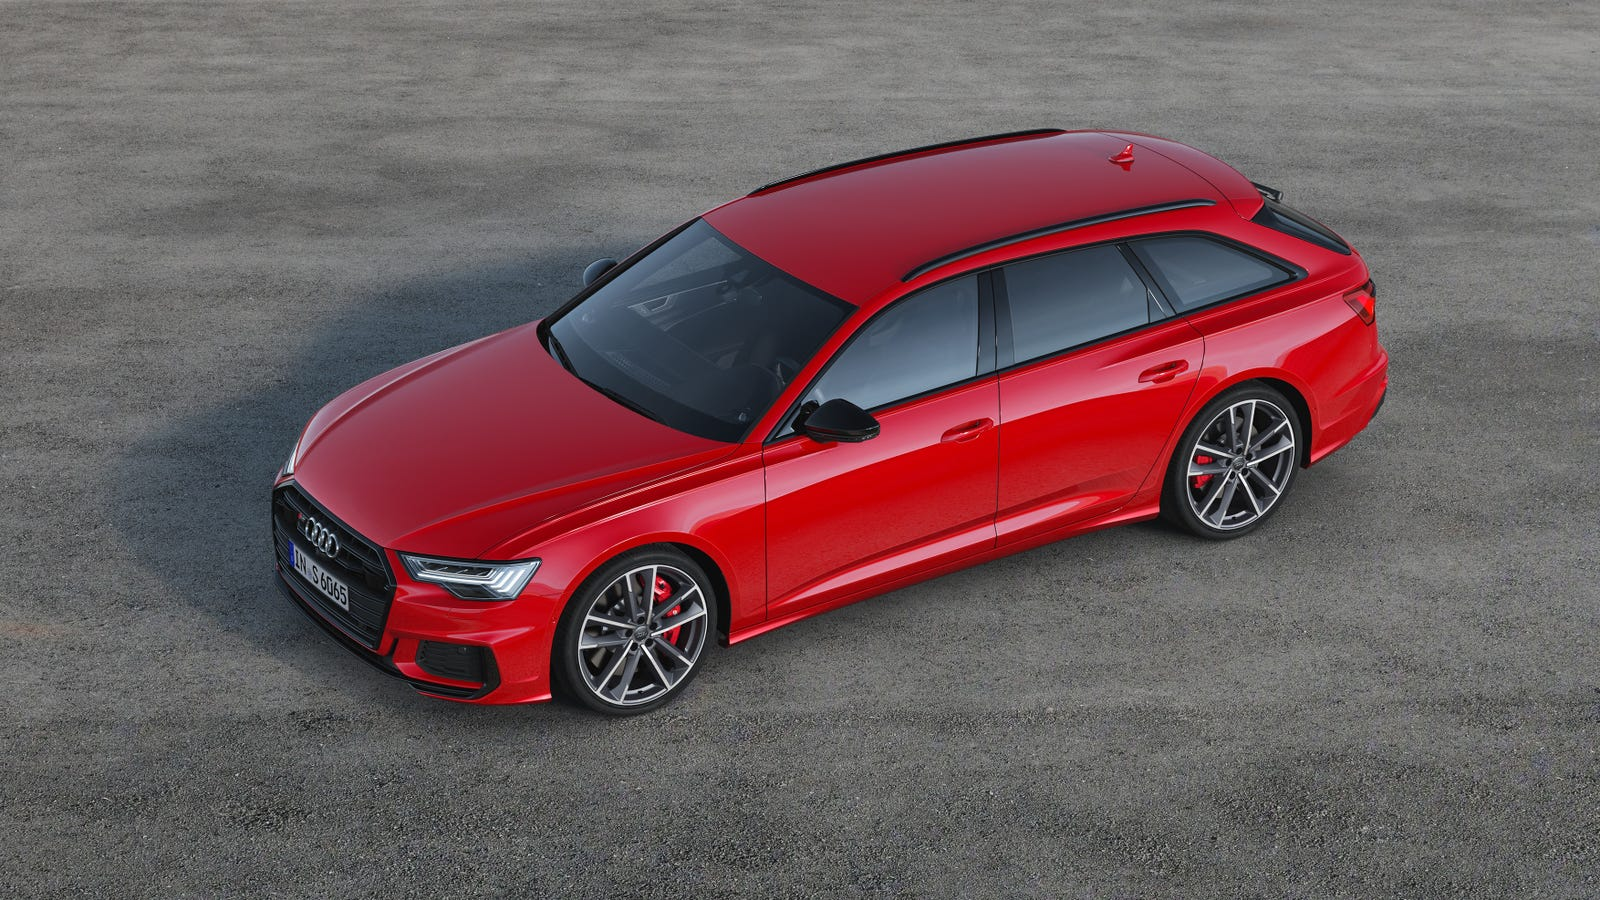 Illustration for article titled 2019 Audi S6 Avant Diesel: Bow Before Your New Wagon-God With 516 LB-FT of Torque